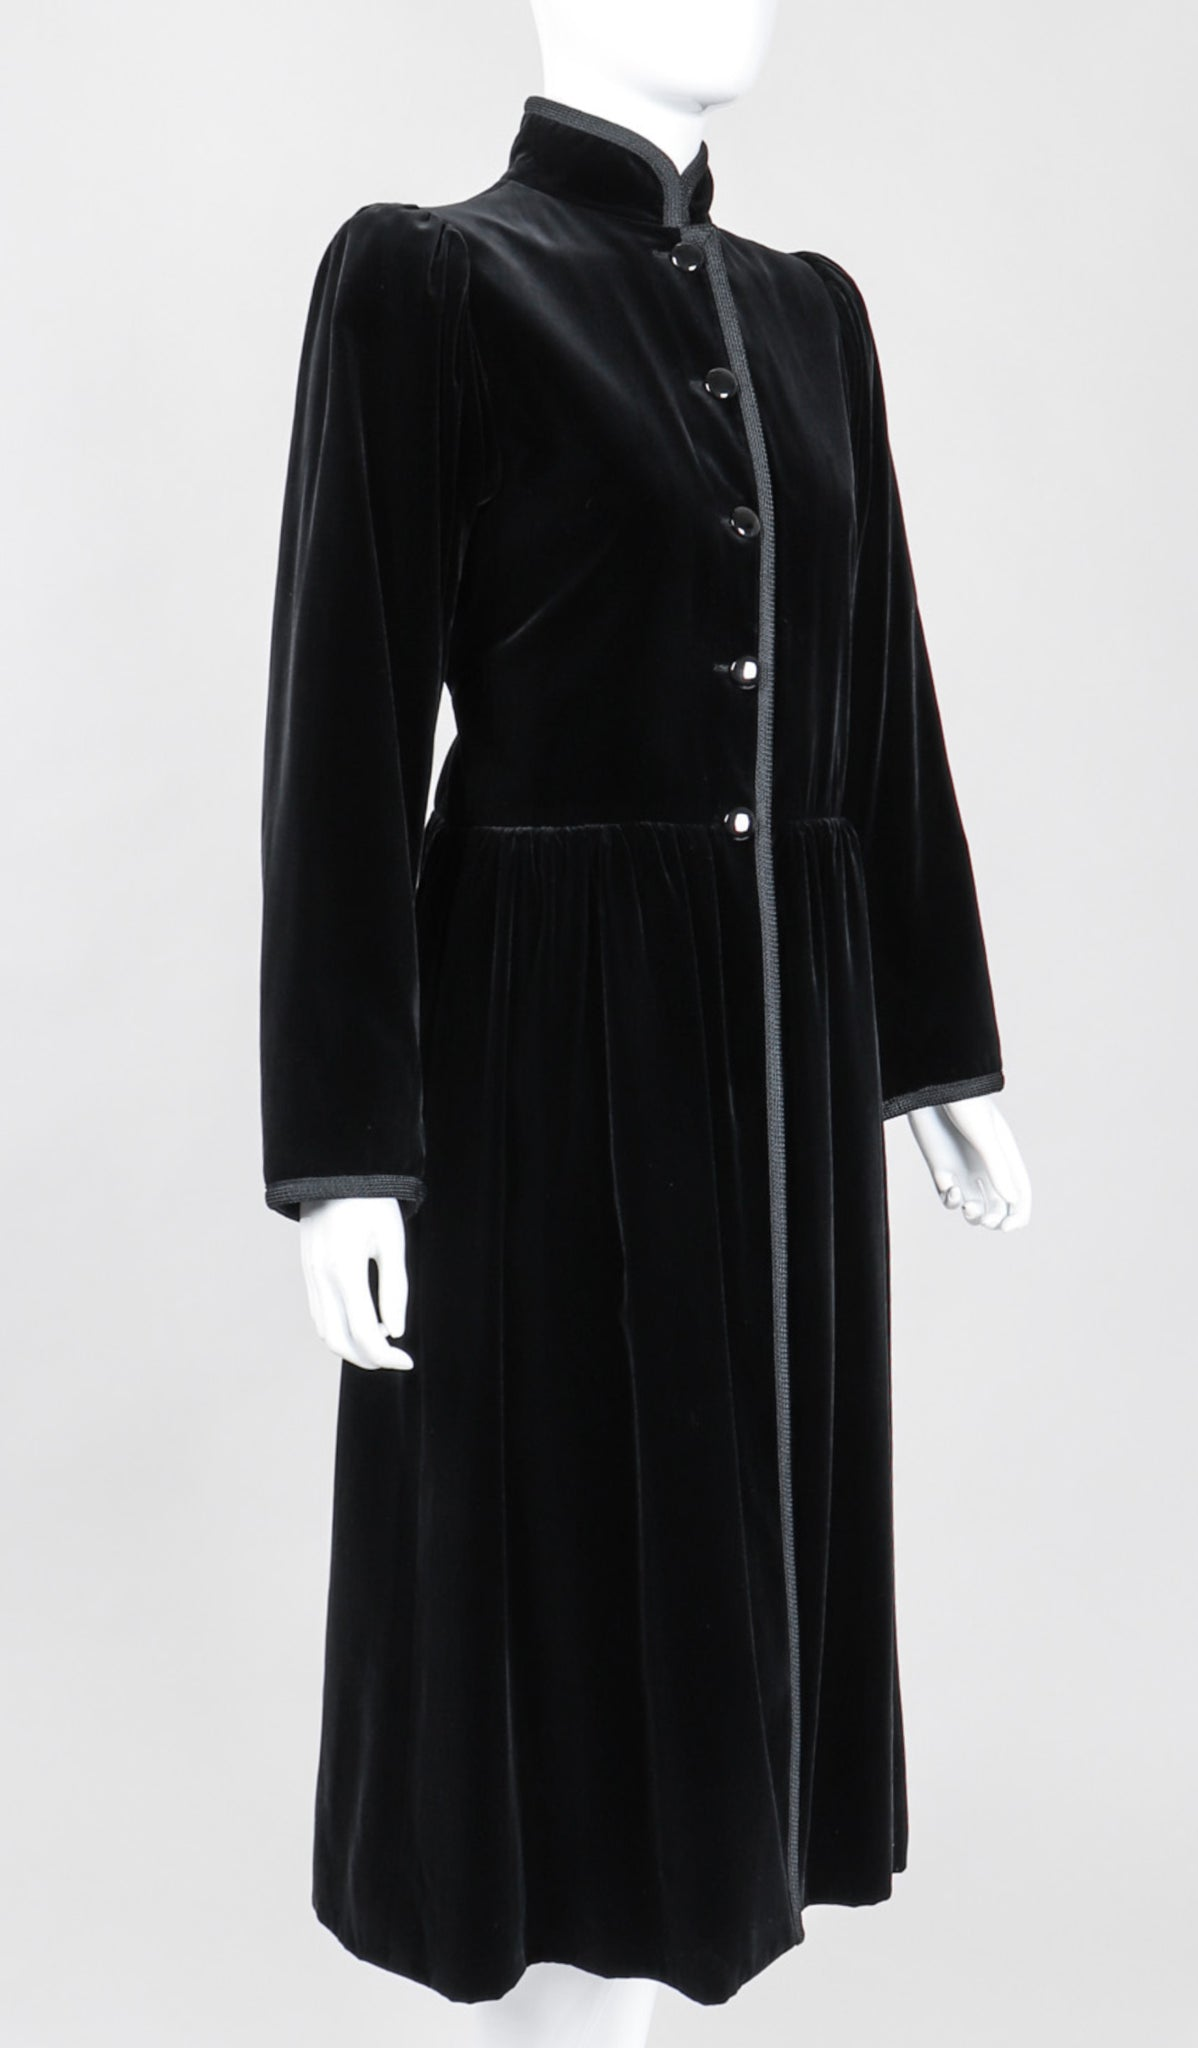 Dress Code Recess Los Angeles Yves Saint Laurent YSL Operas-Ballets Russes Russian Collection Folk Velvet Coat Dress Jacket